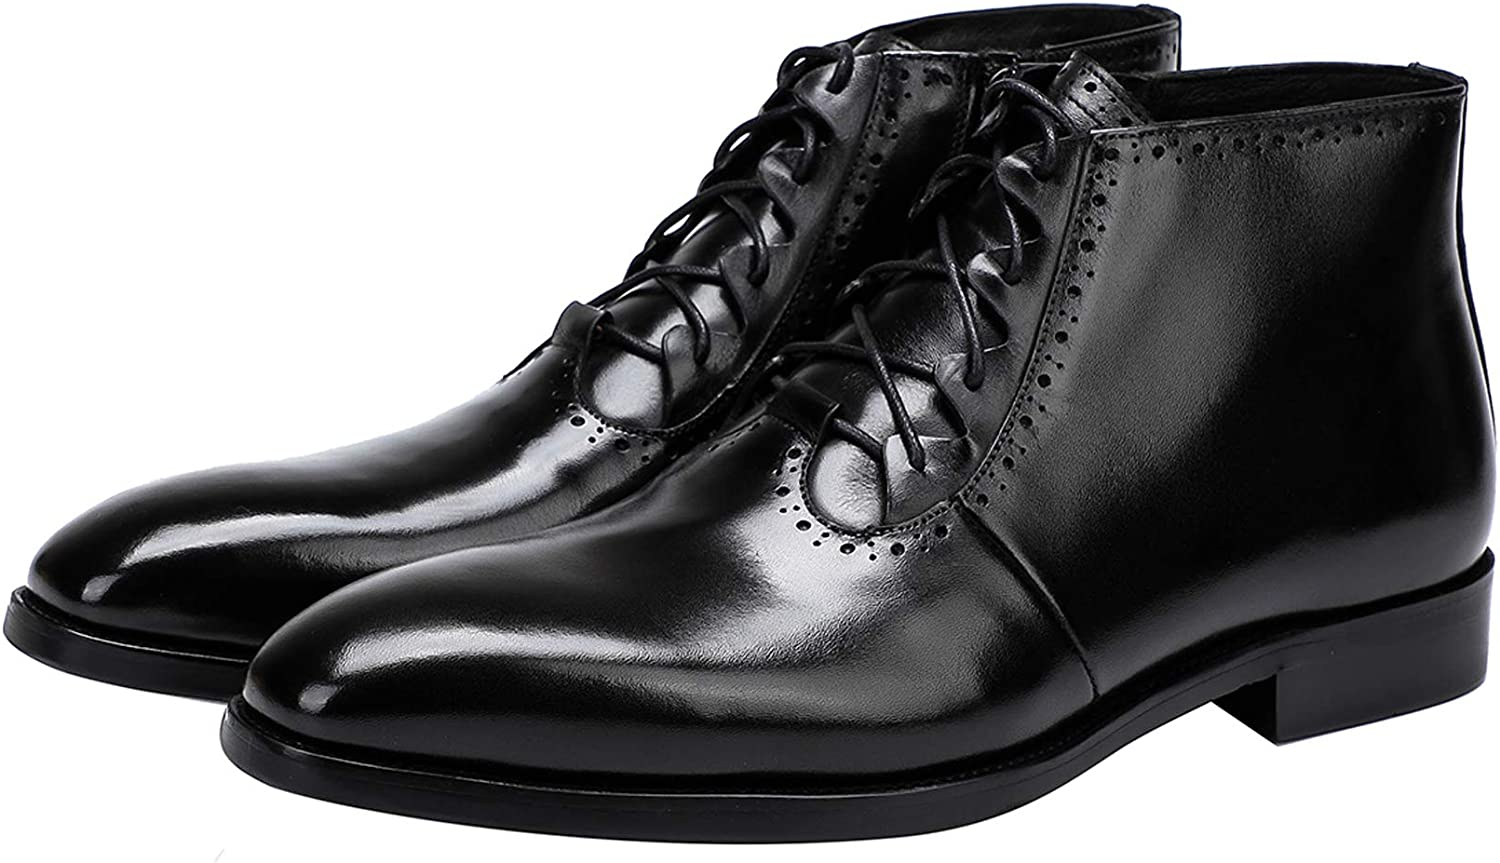 Mens Boot Lace Up Zipper Classical Oxford Leather Wing Tip Ankle Dress Boots Black Brown